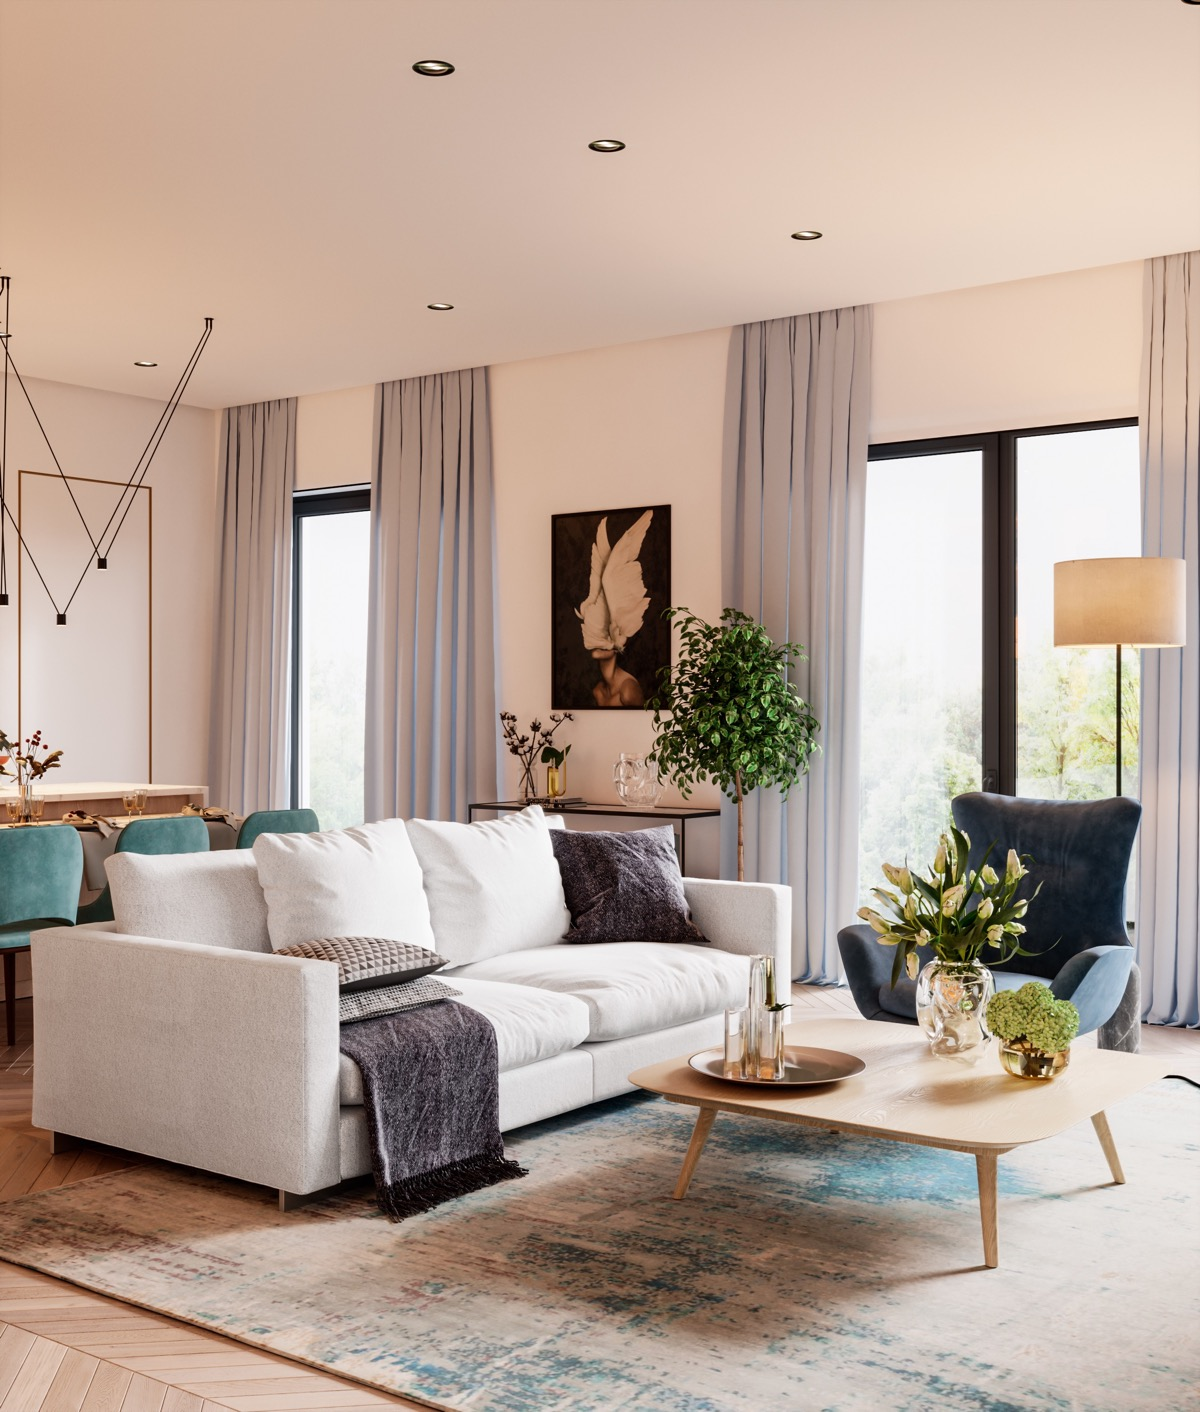 HOME DESIGNING: Restful Interior With Blue & Brass Accents Running ...